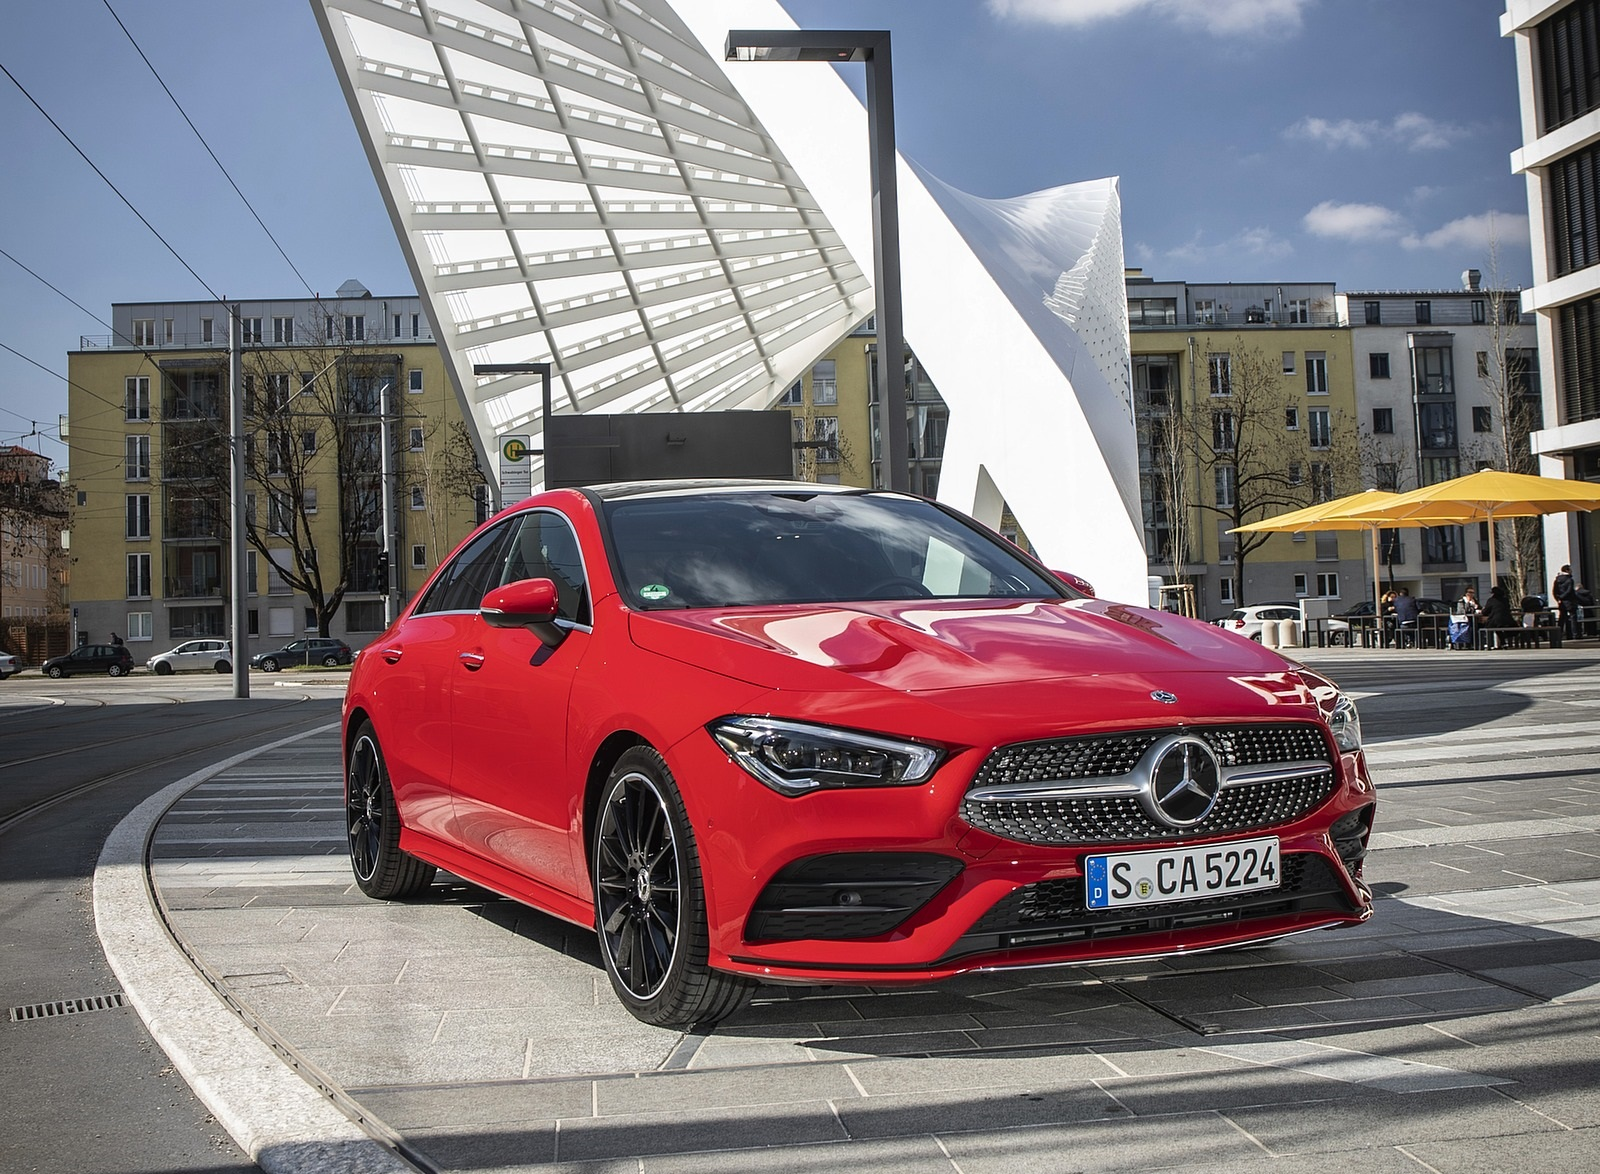 2020 Mercedes-Benz CLA 250 4MATIC Coupe AMG Line (Color: Jupiter Red) Front Three-Quarter Wallpapers (8)